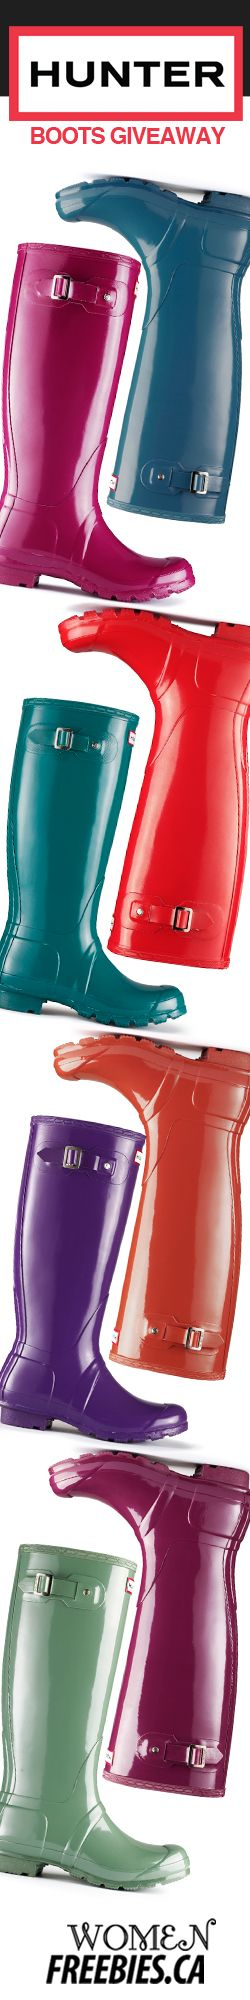 #Win a Pair of #HunterBoots from #WomenFreebies #Fashion #Hunter #Boots